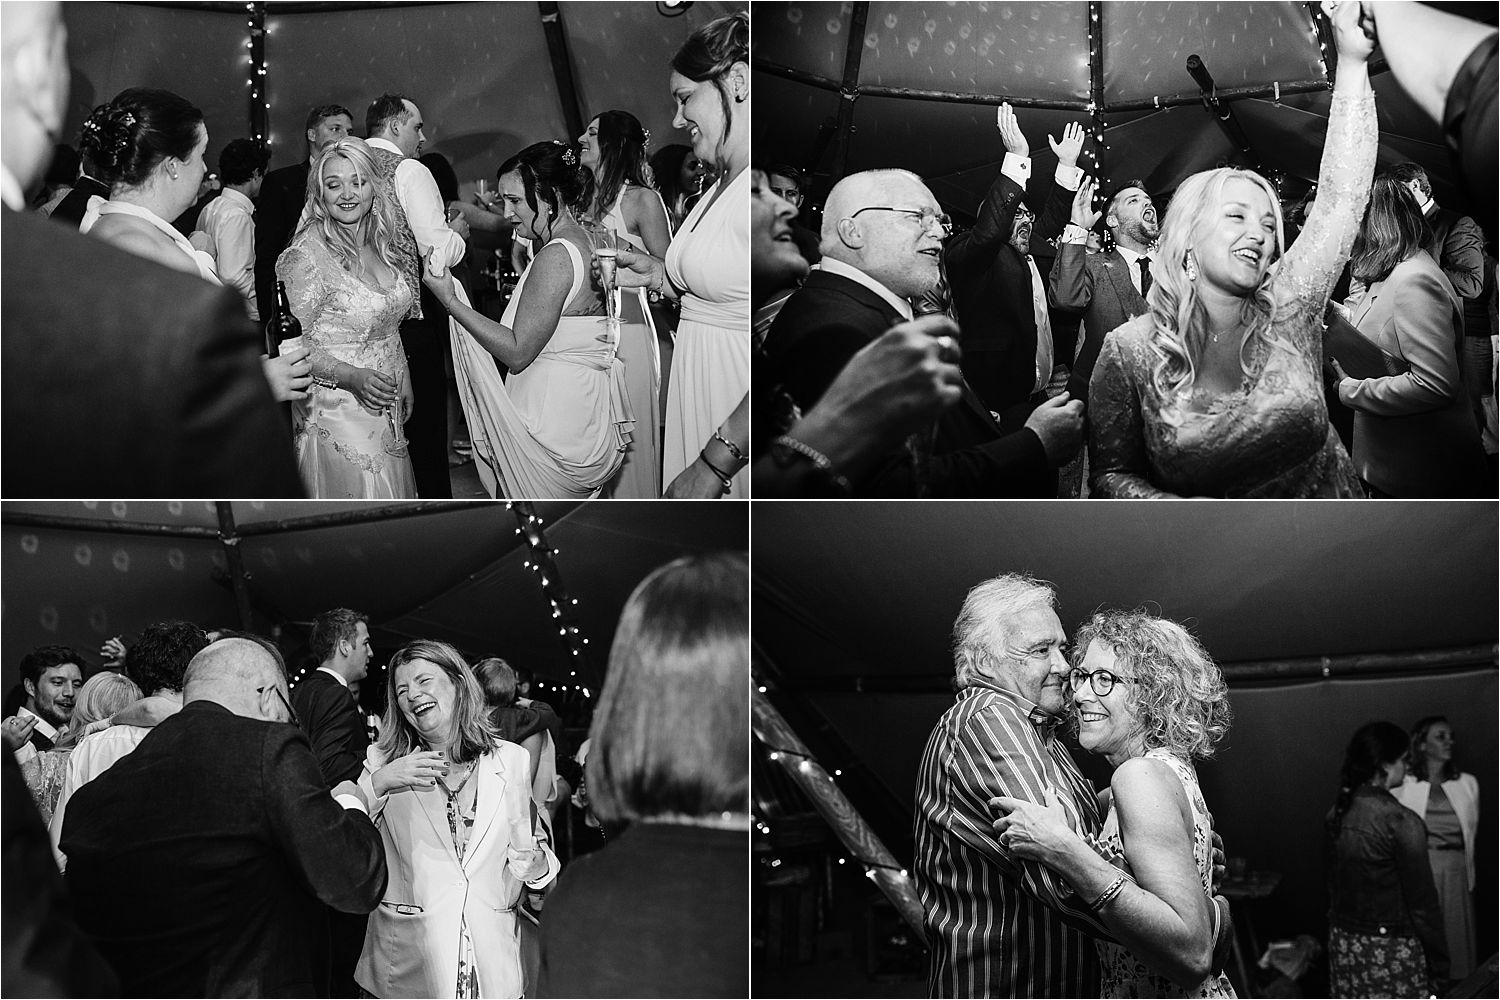 Wedding party in full swing in Bedfordshire tipi wedding